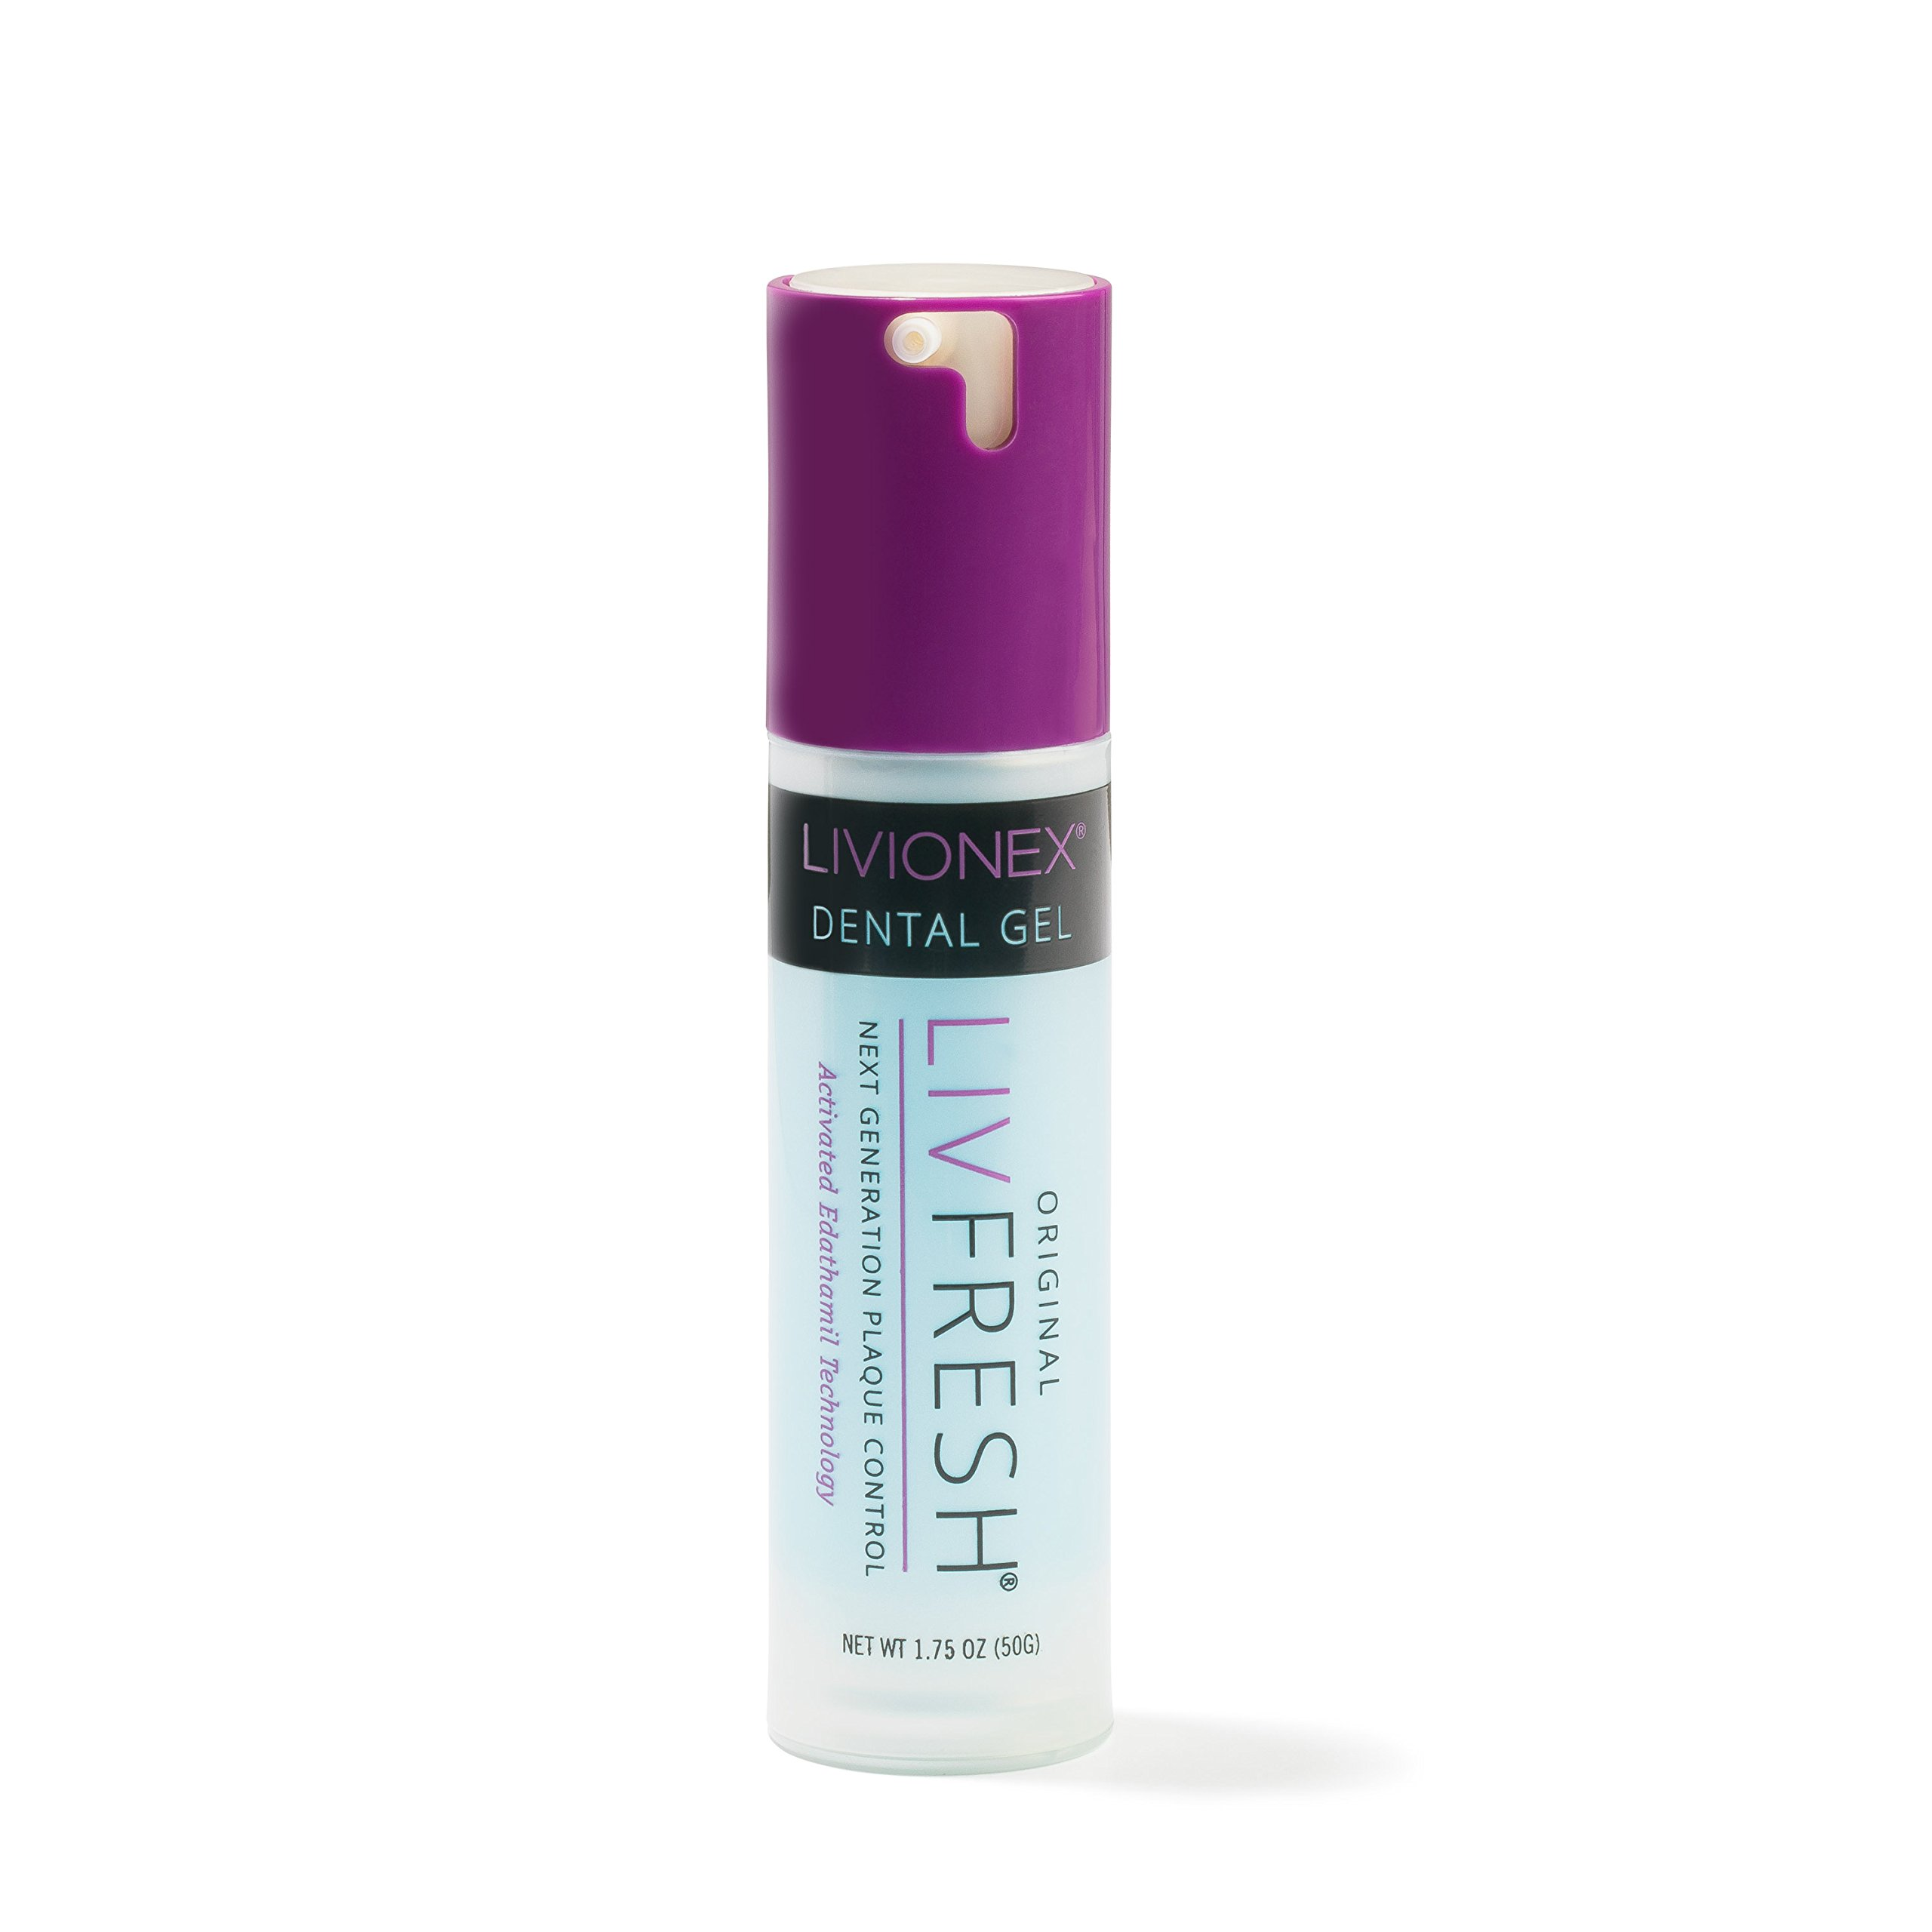 LIVFRESH Dental Gel- Cleans Teeth Better; Prevents Bad Breath; From Livionex; Peppermint Flavor; Dispensed In a Pump